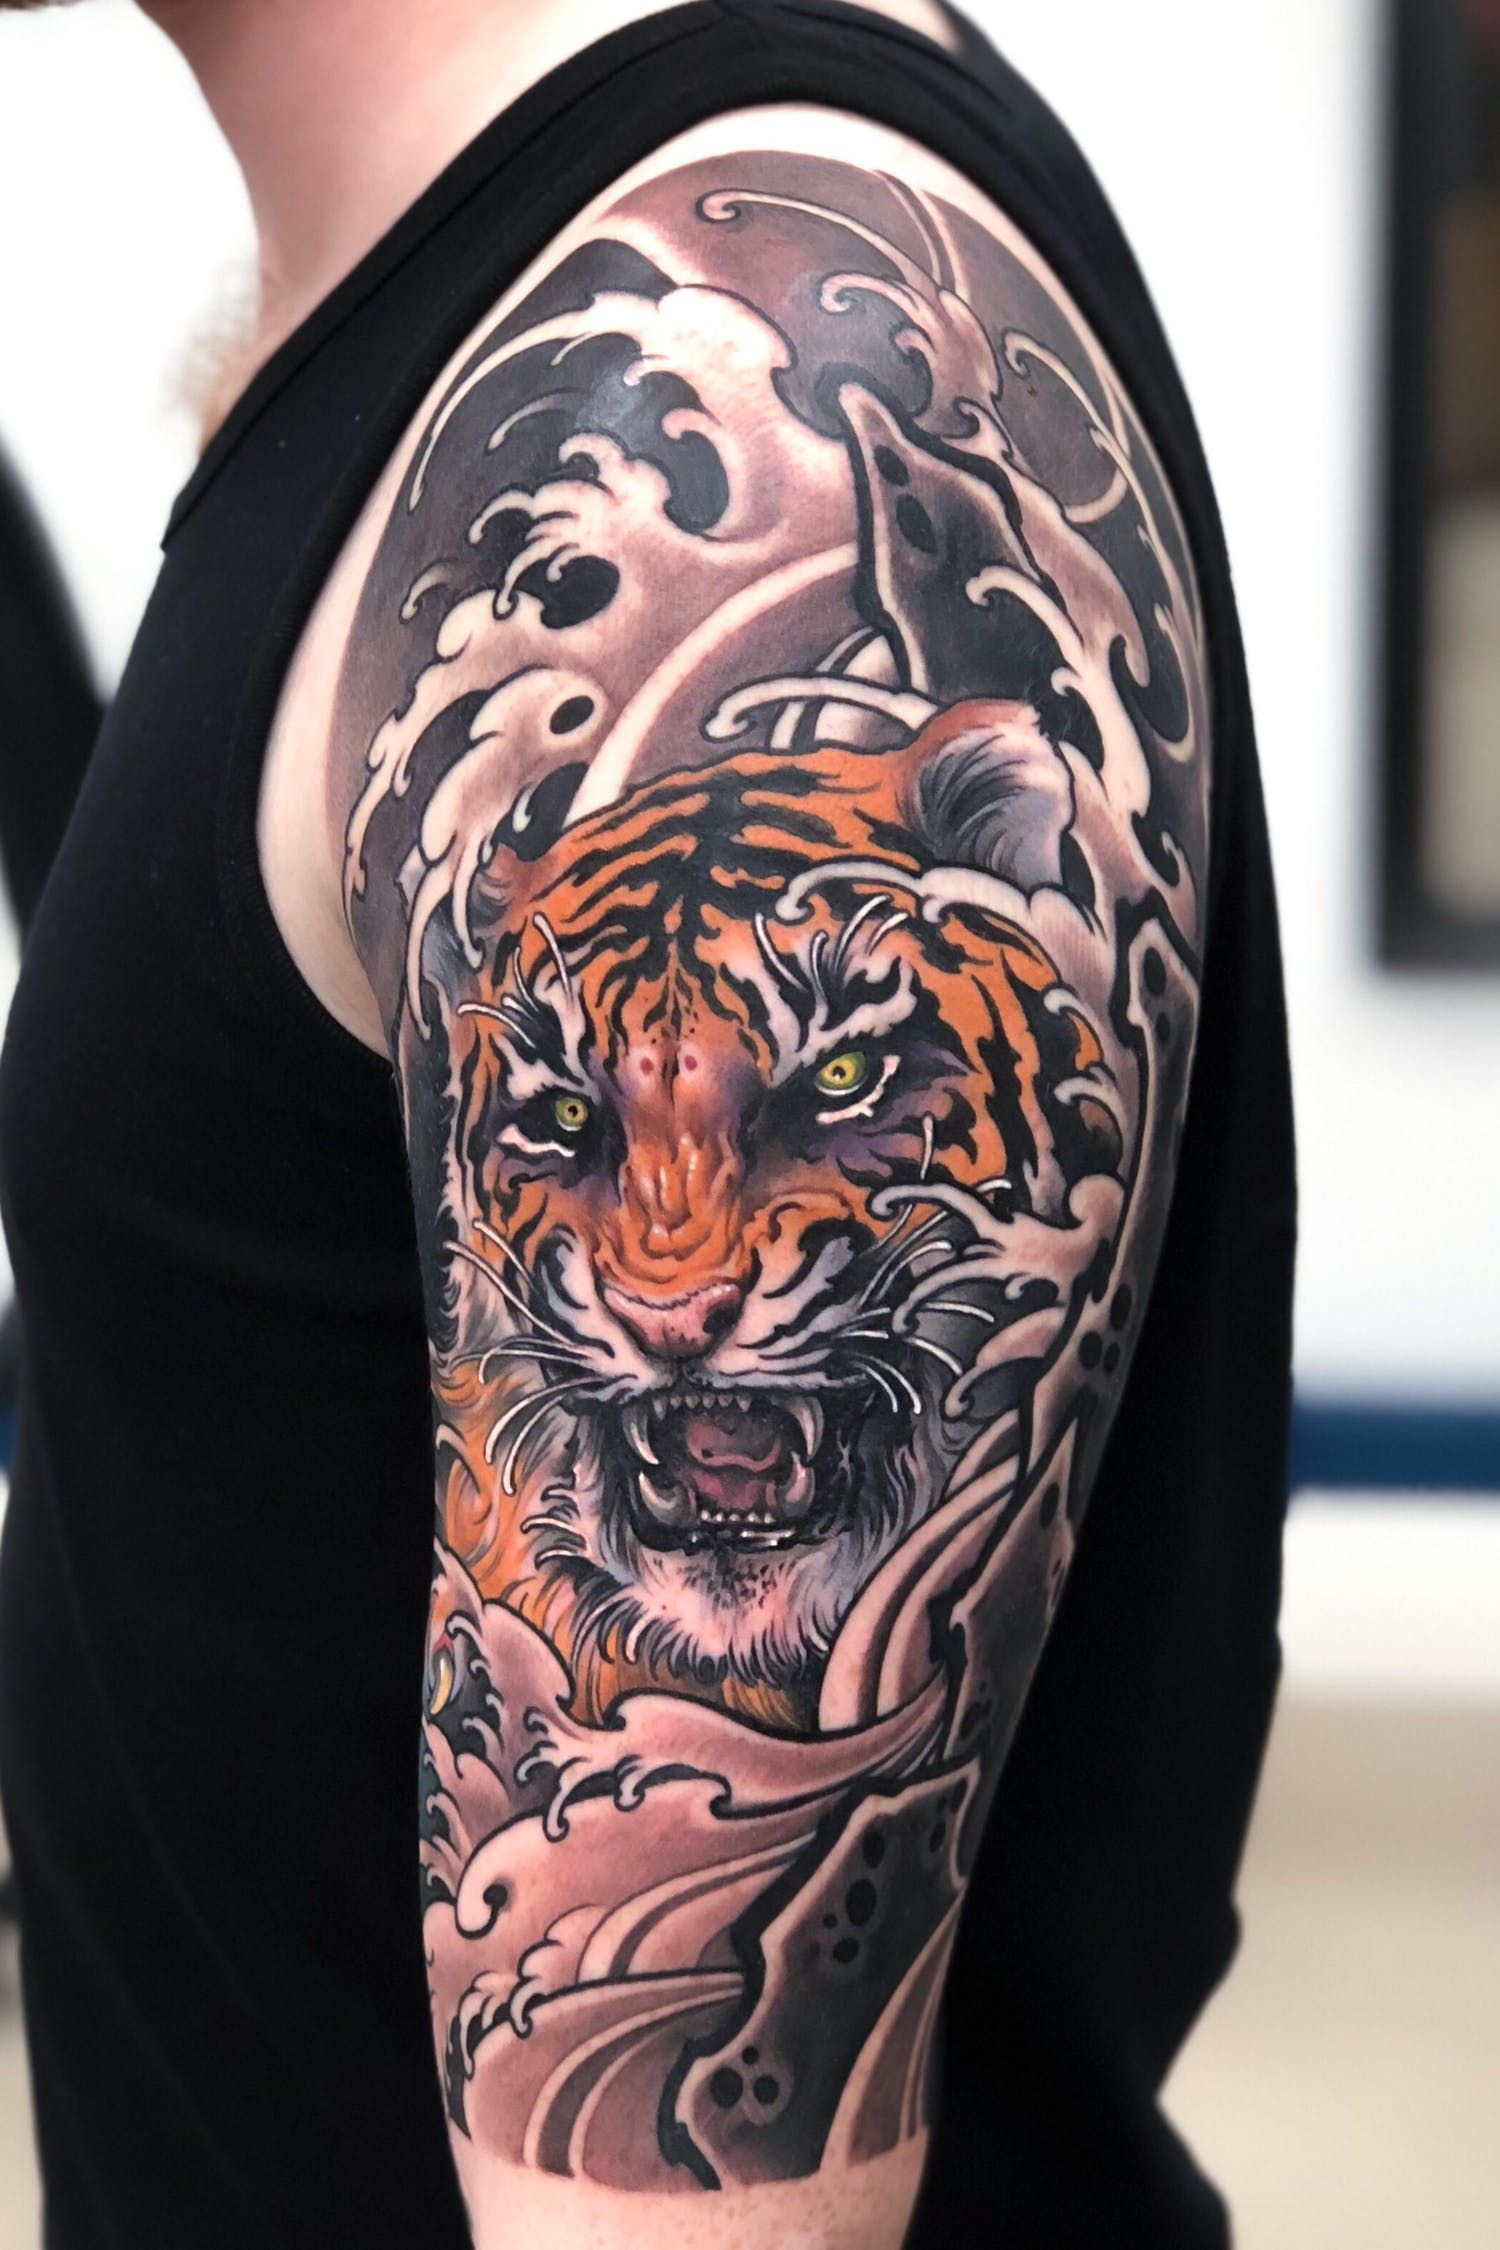 Tiger, rocks and waves💪🏻 tattoodo inkjecta